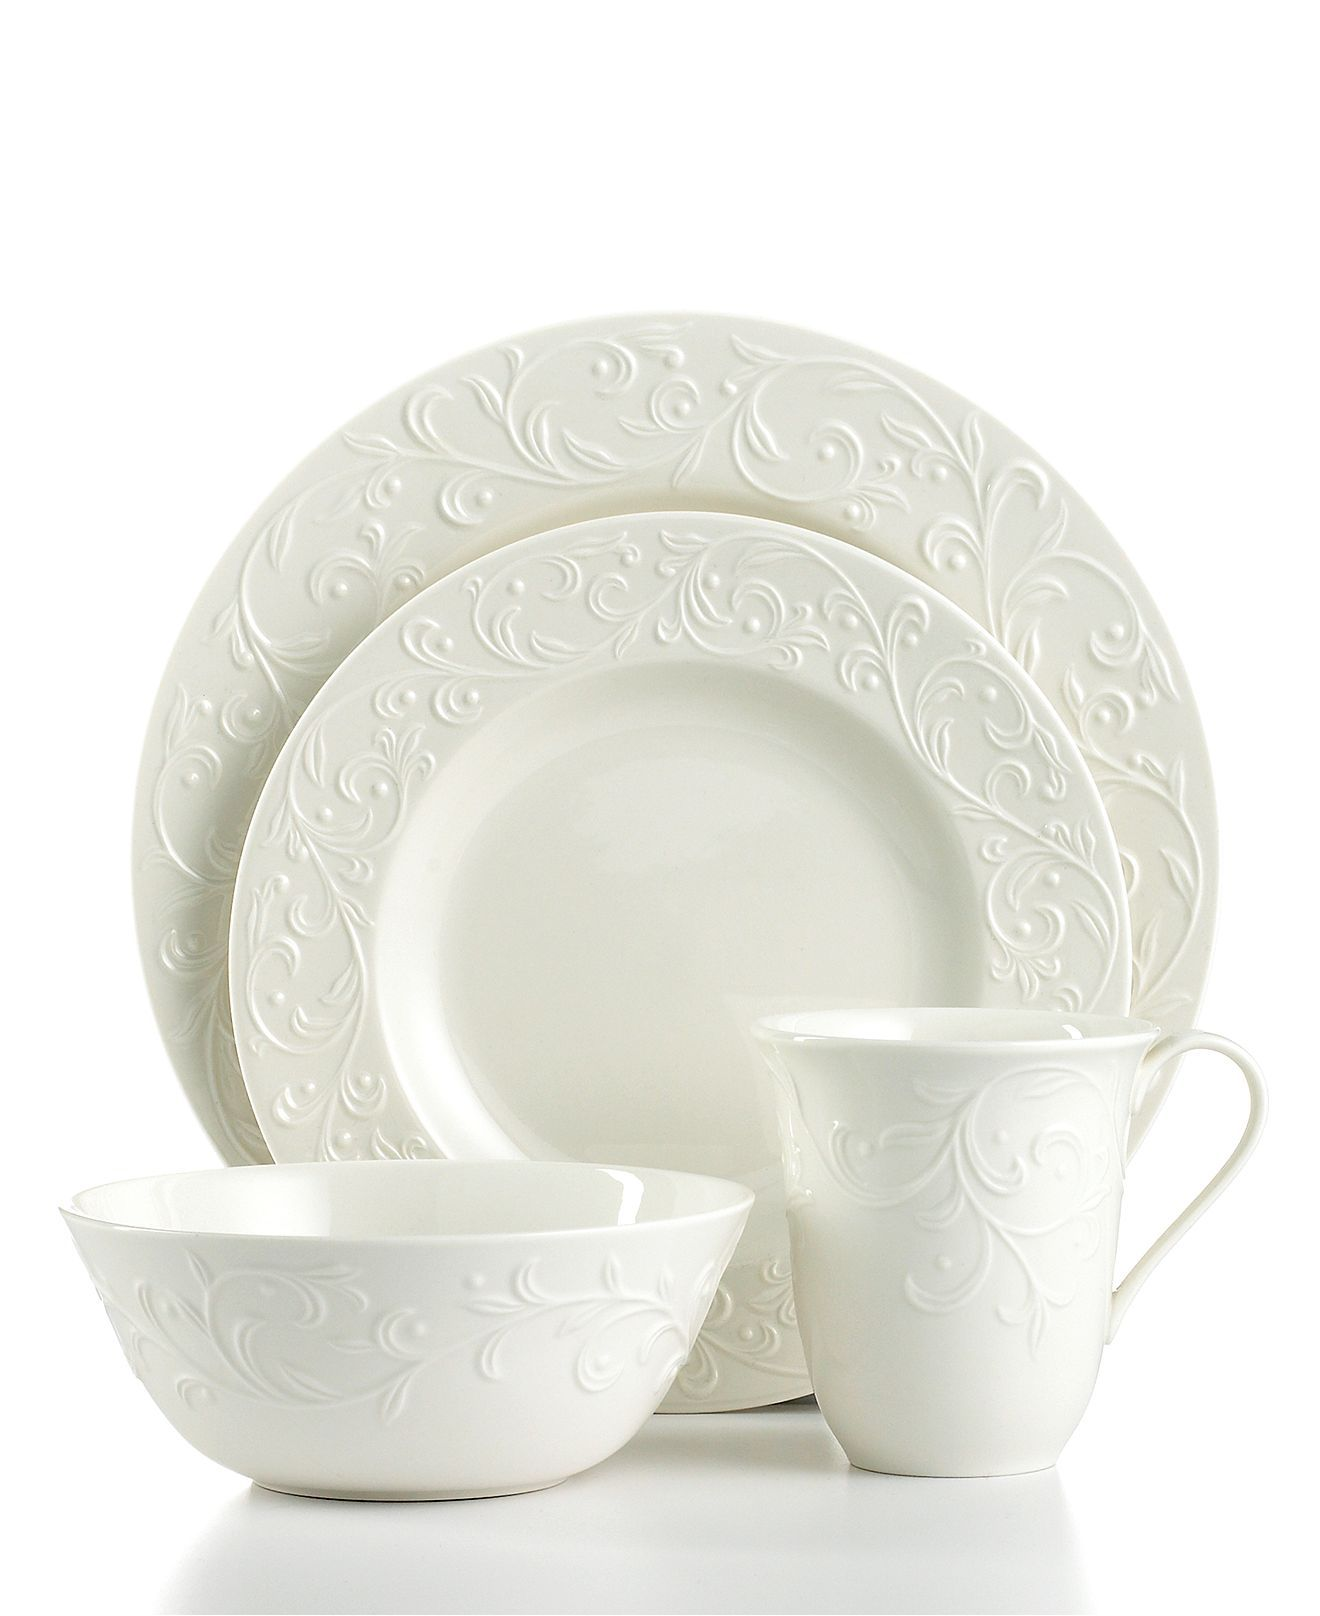 Lenox Dinnerware Opal Innocence Carved 4 Piece Place Setting - Lenox Casual Dinnerware - Macy\u0027s  sc 1 st  Pinterest & Lenox Dinnerware Opal Innocence Carved 4 Piece Place Setting ...